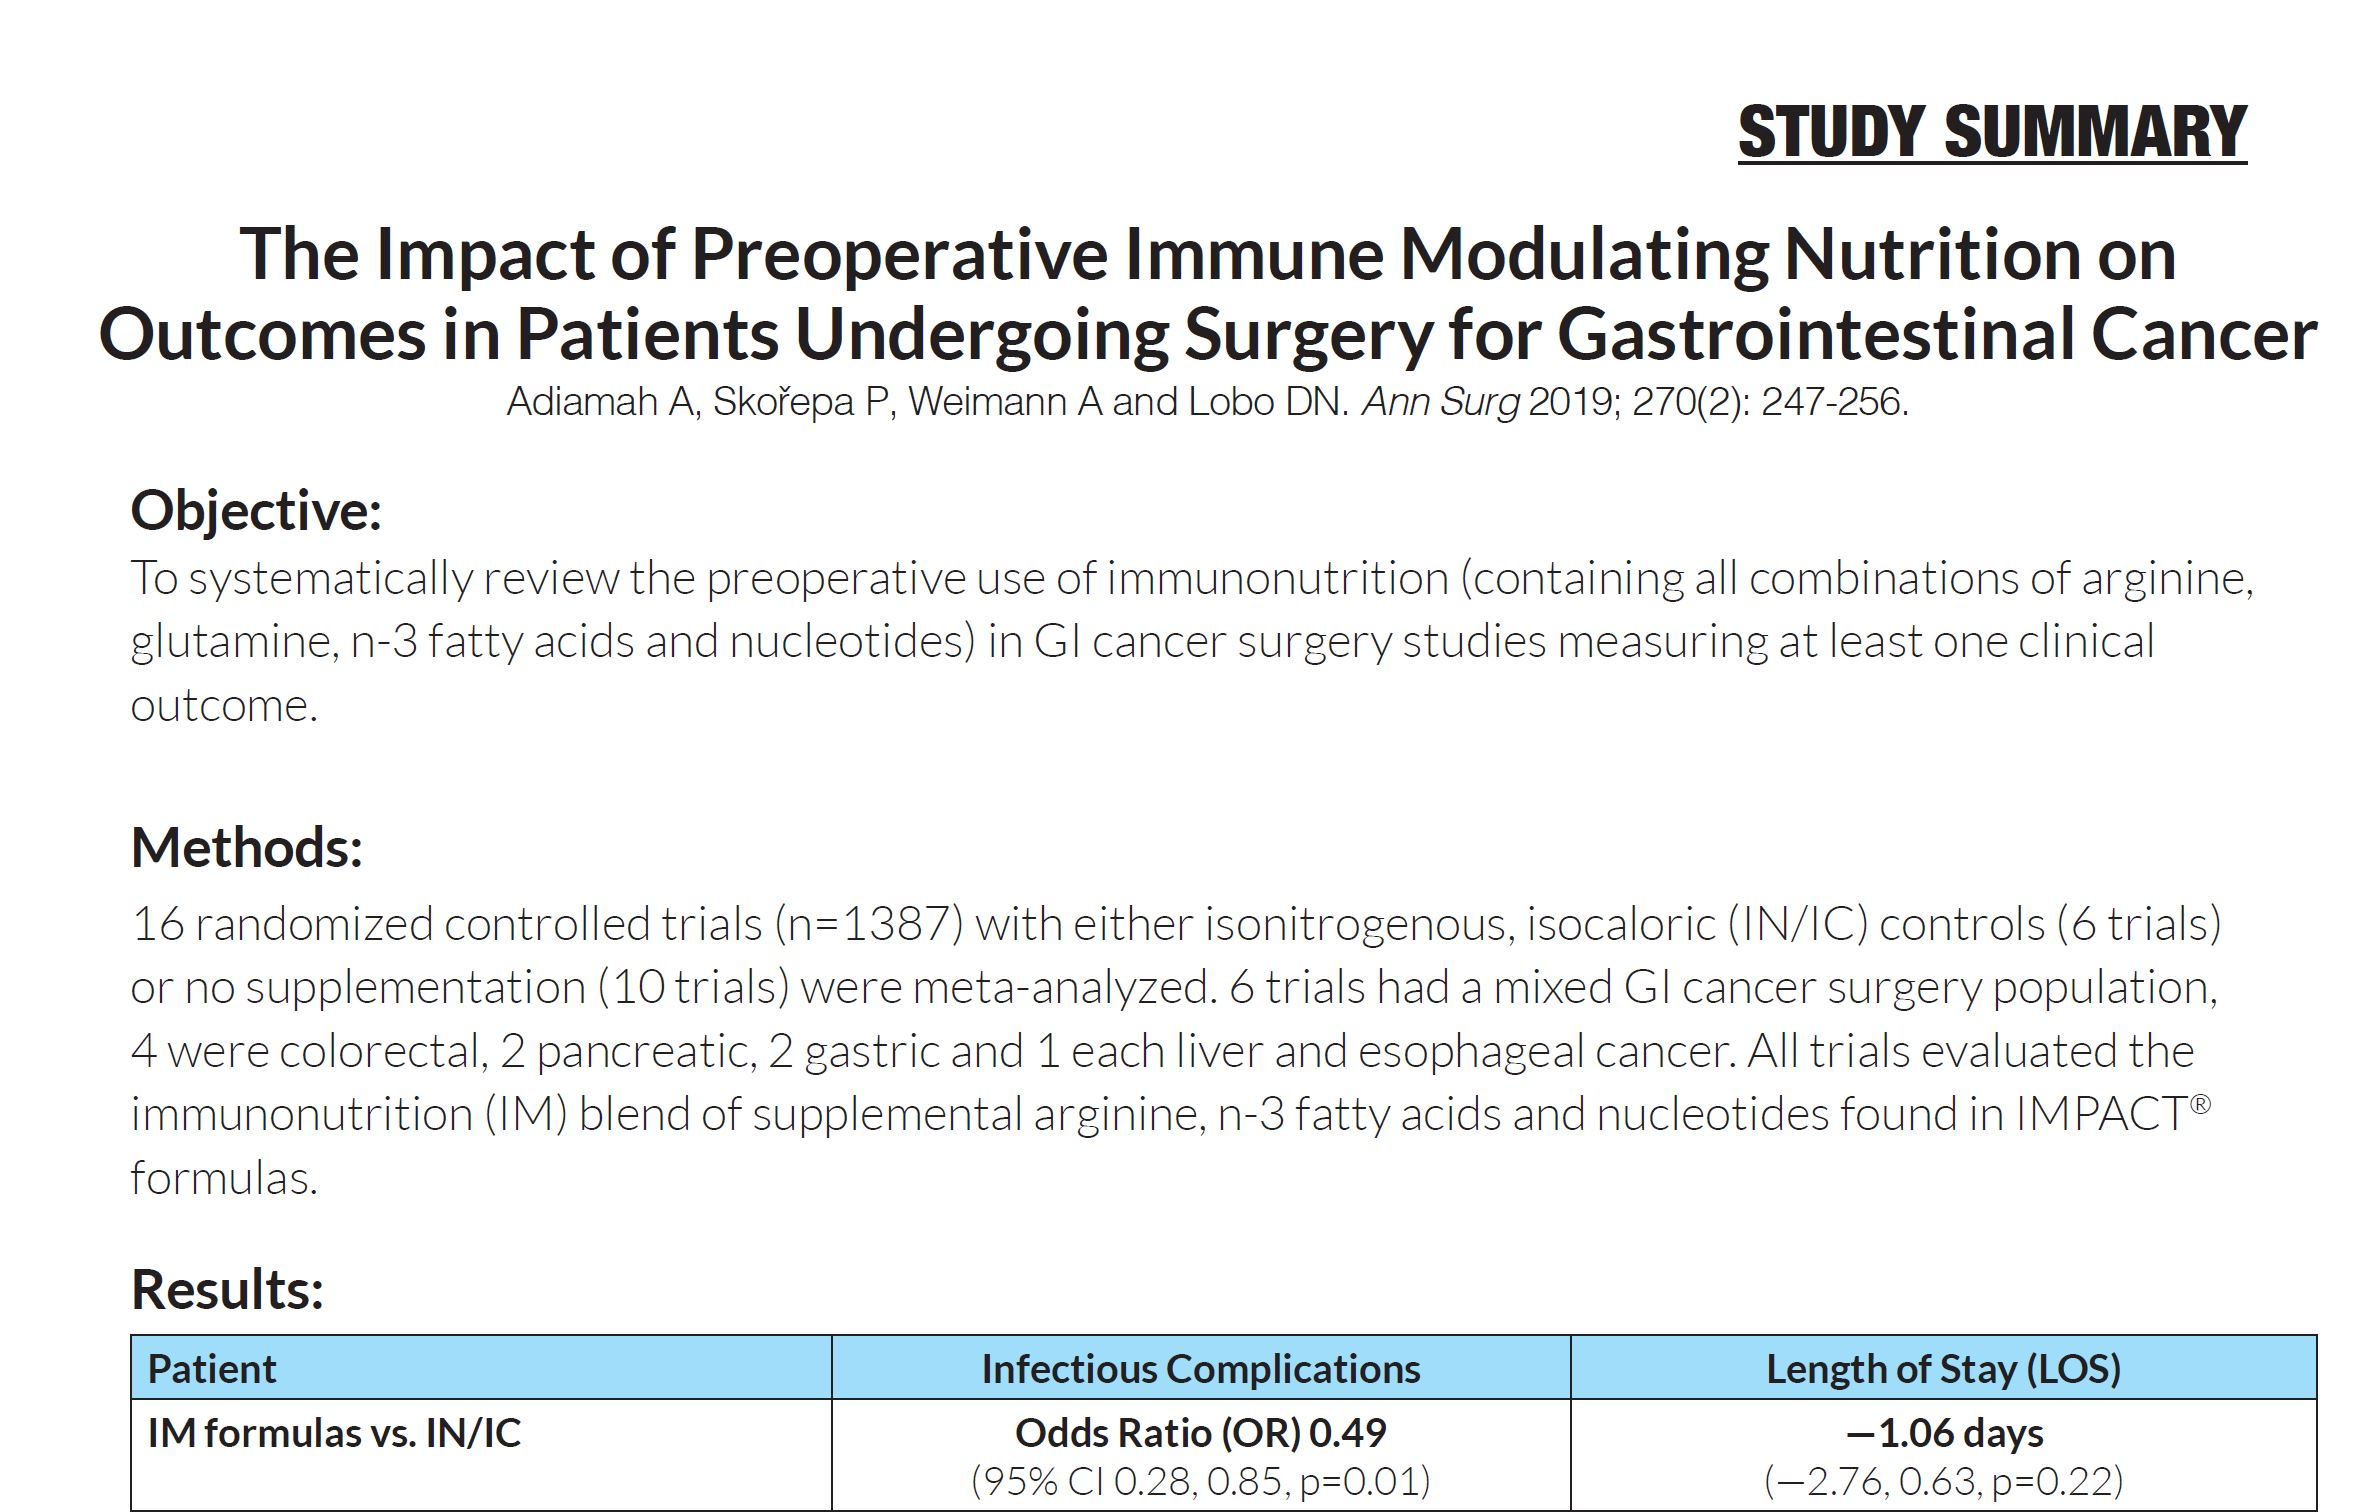 Adiamah-Impact of Preoperative immune Modulating Nutrition on Outcomes - GI Cancer Surgery